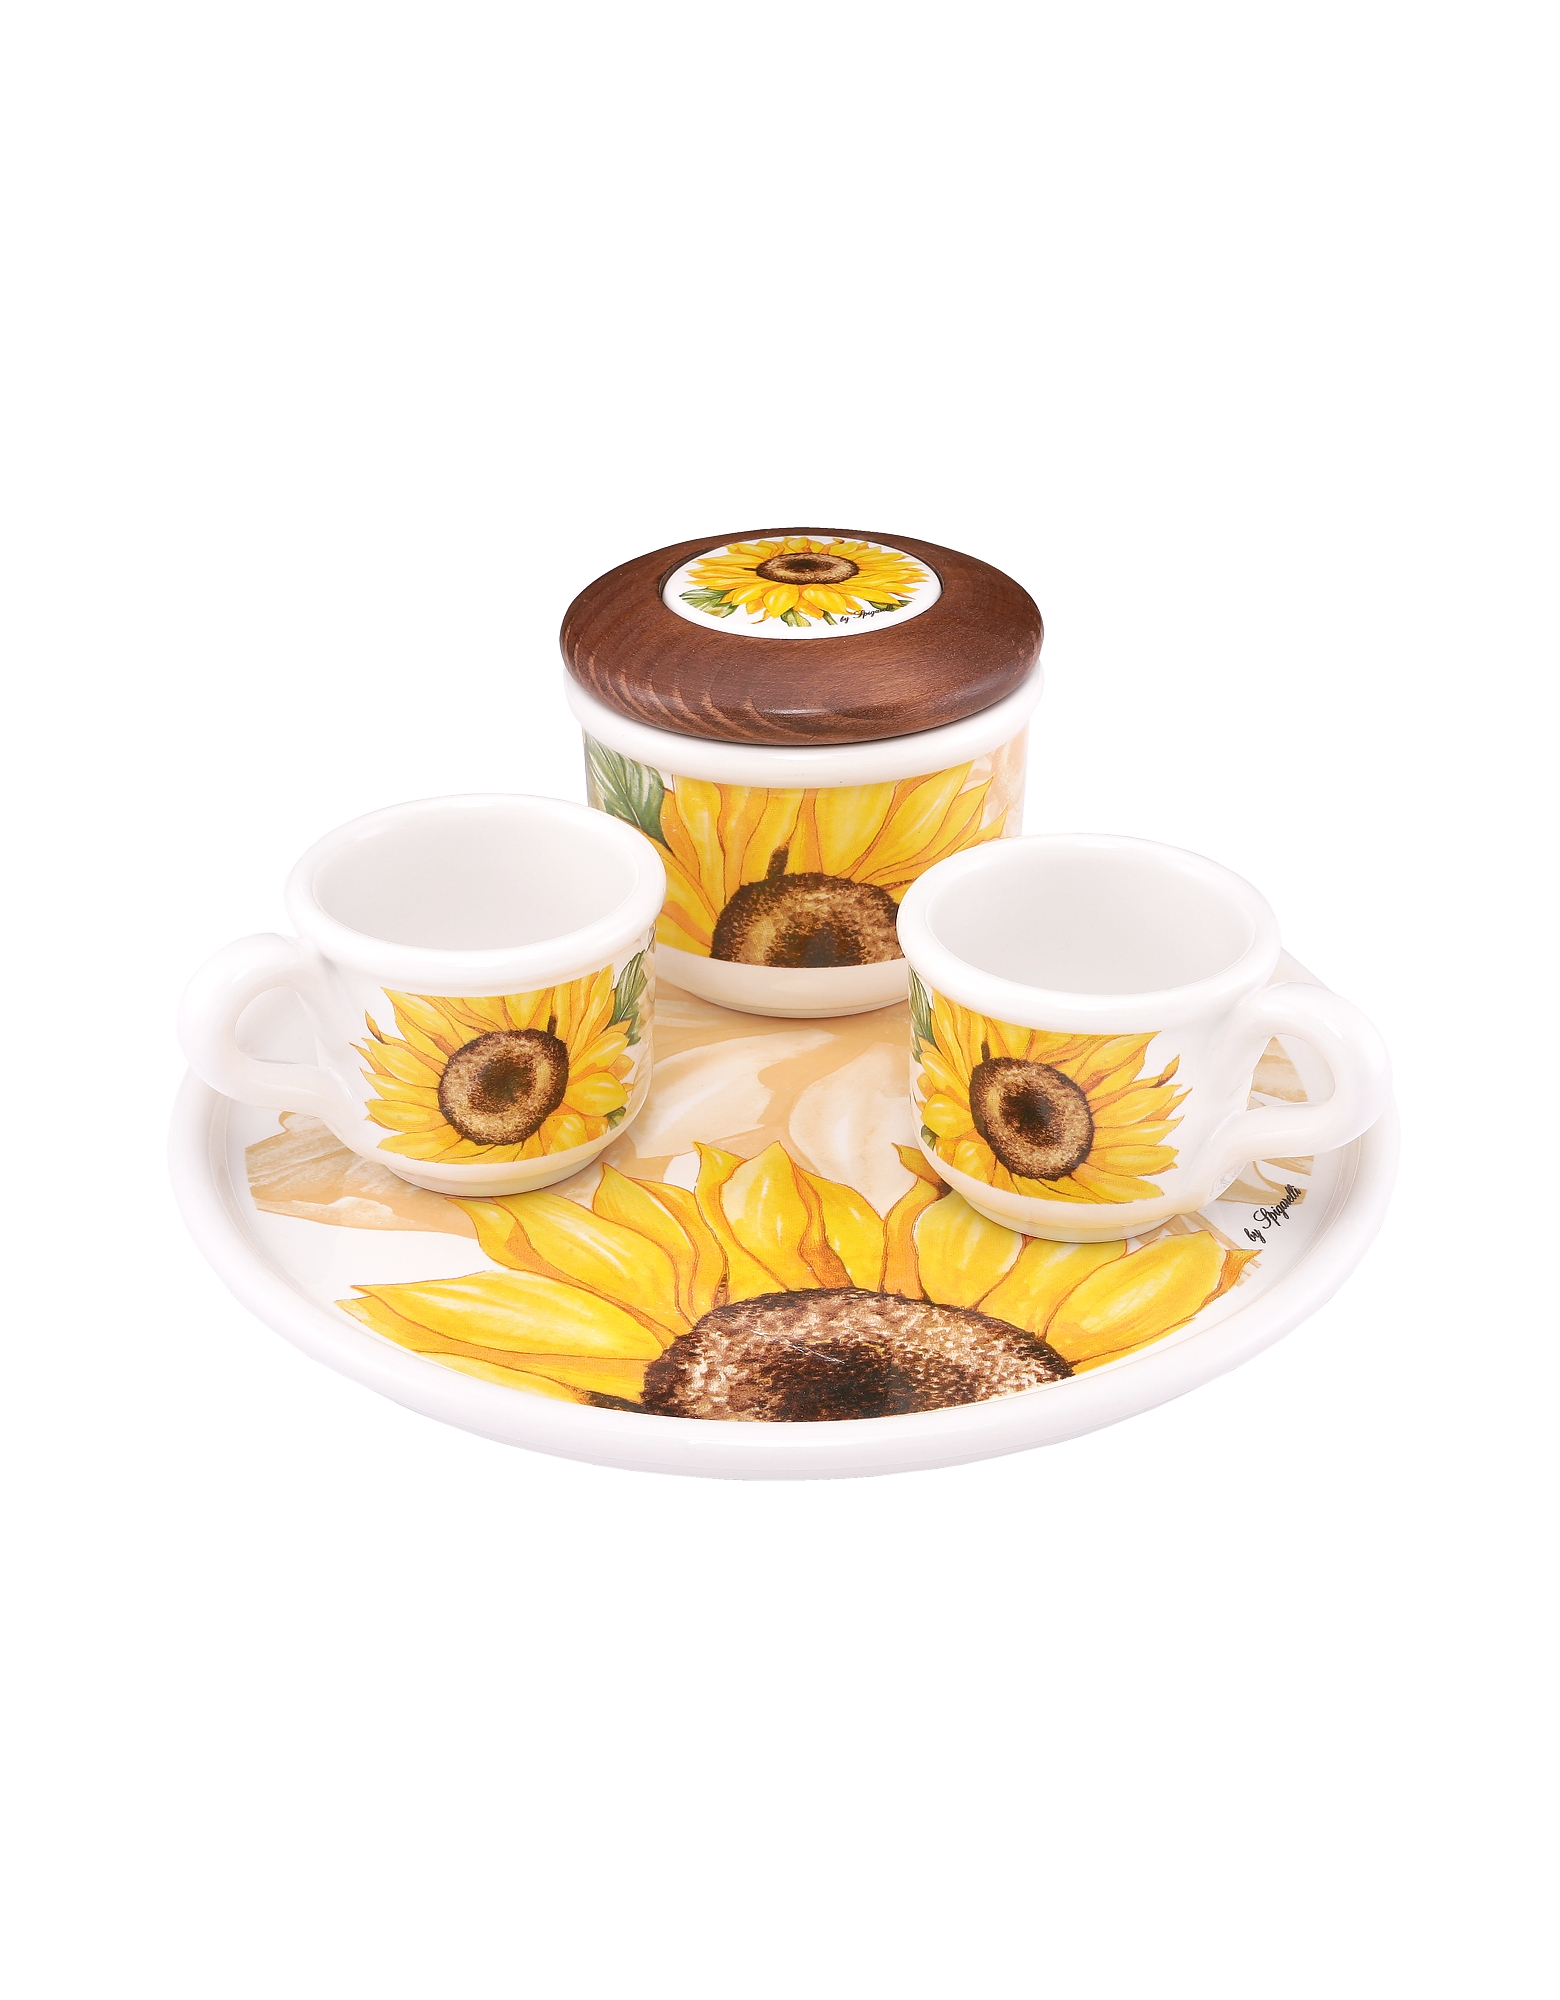 Image of Spigarelli Designer Kitchen & Dining, Sugar and Mocha Cups Sunflower Ceramic Set w/Tray